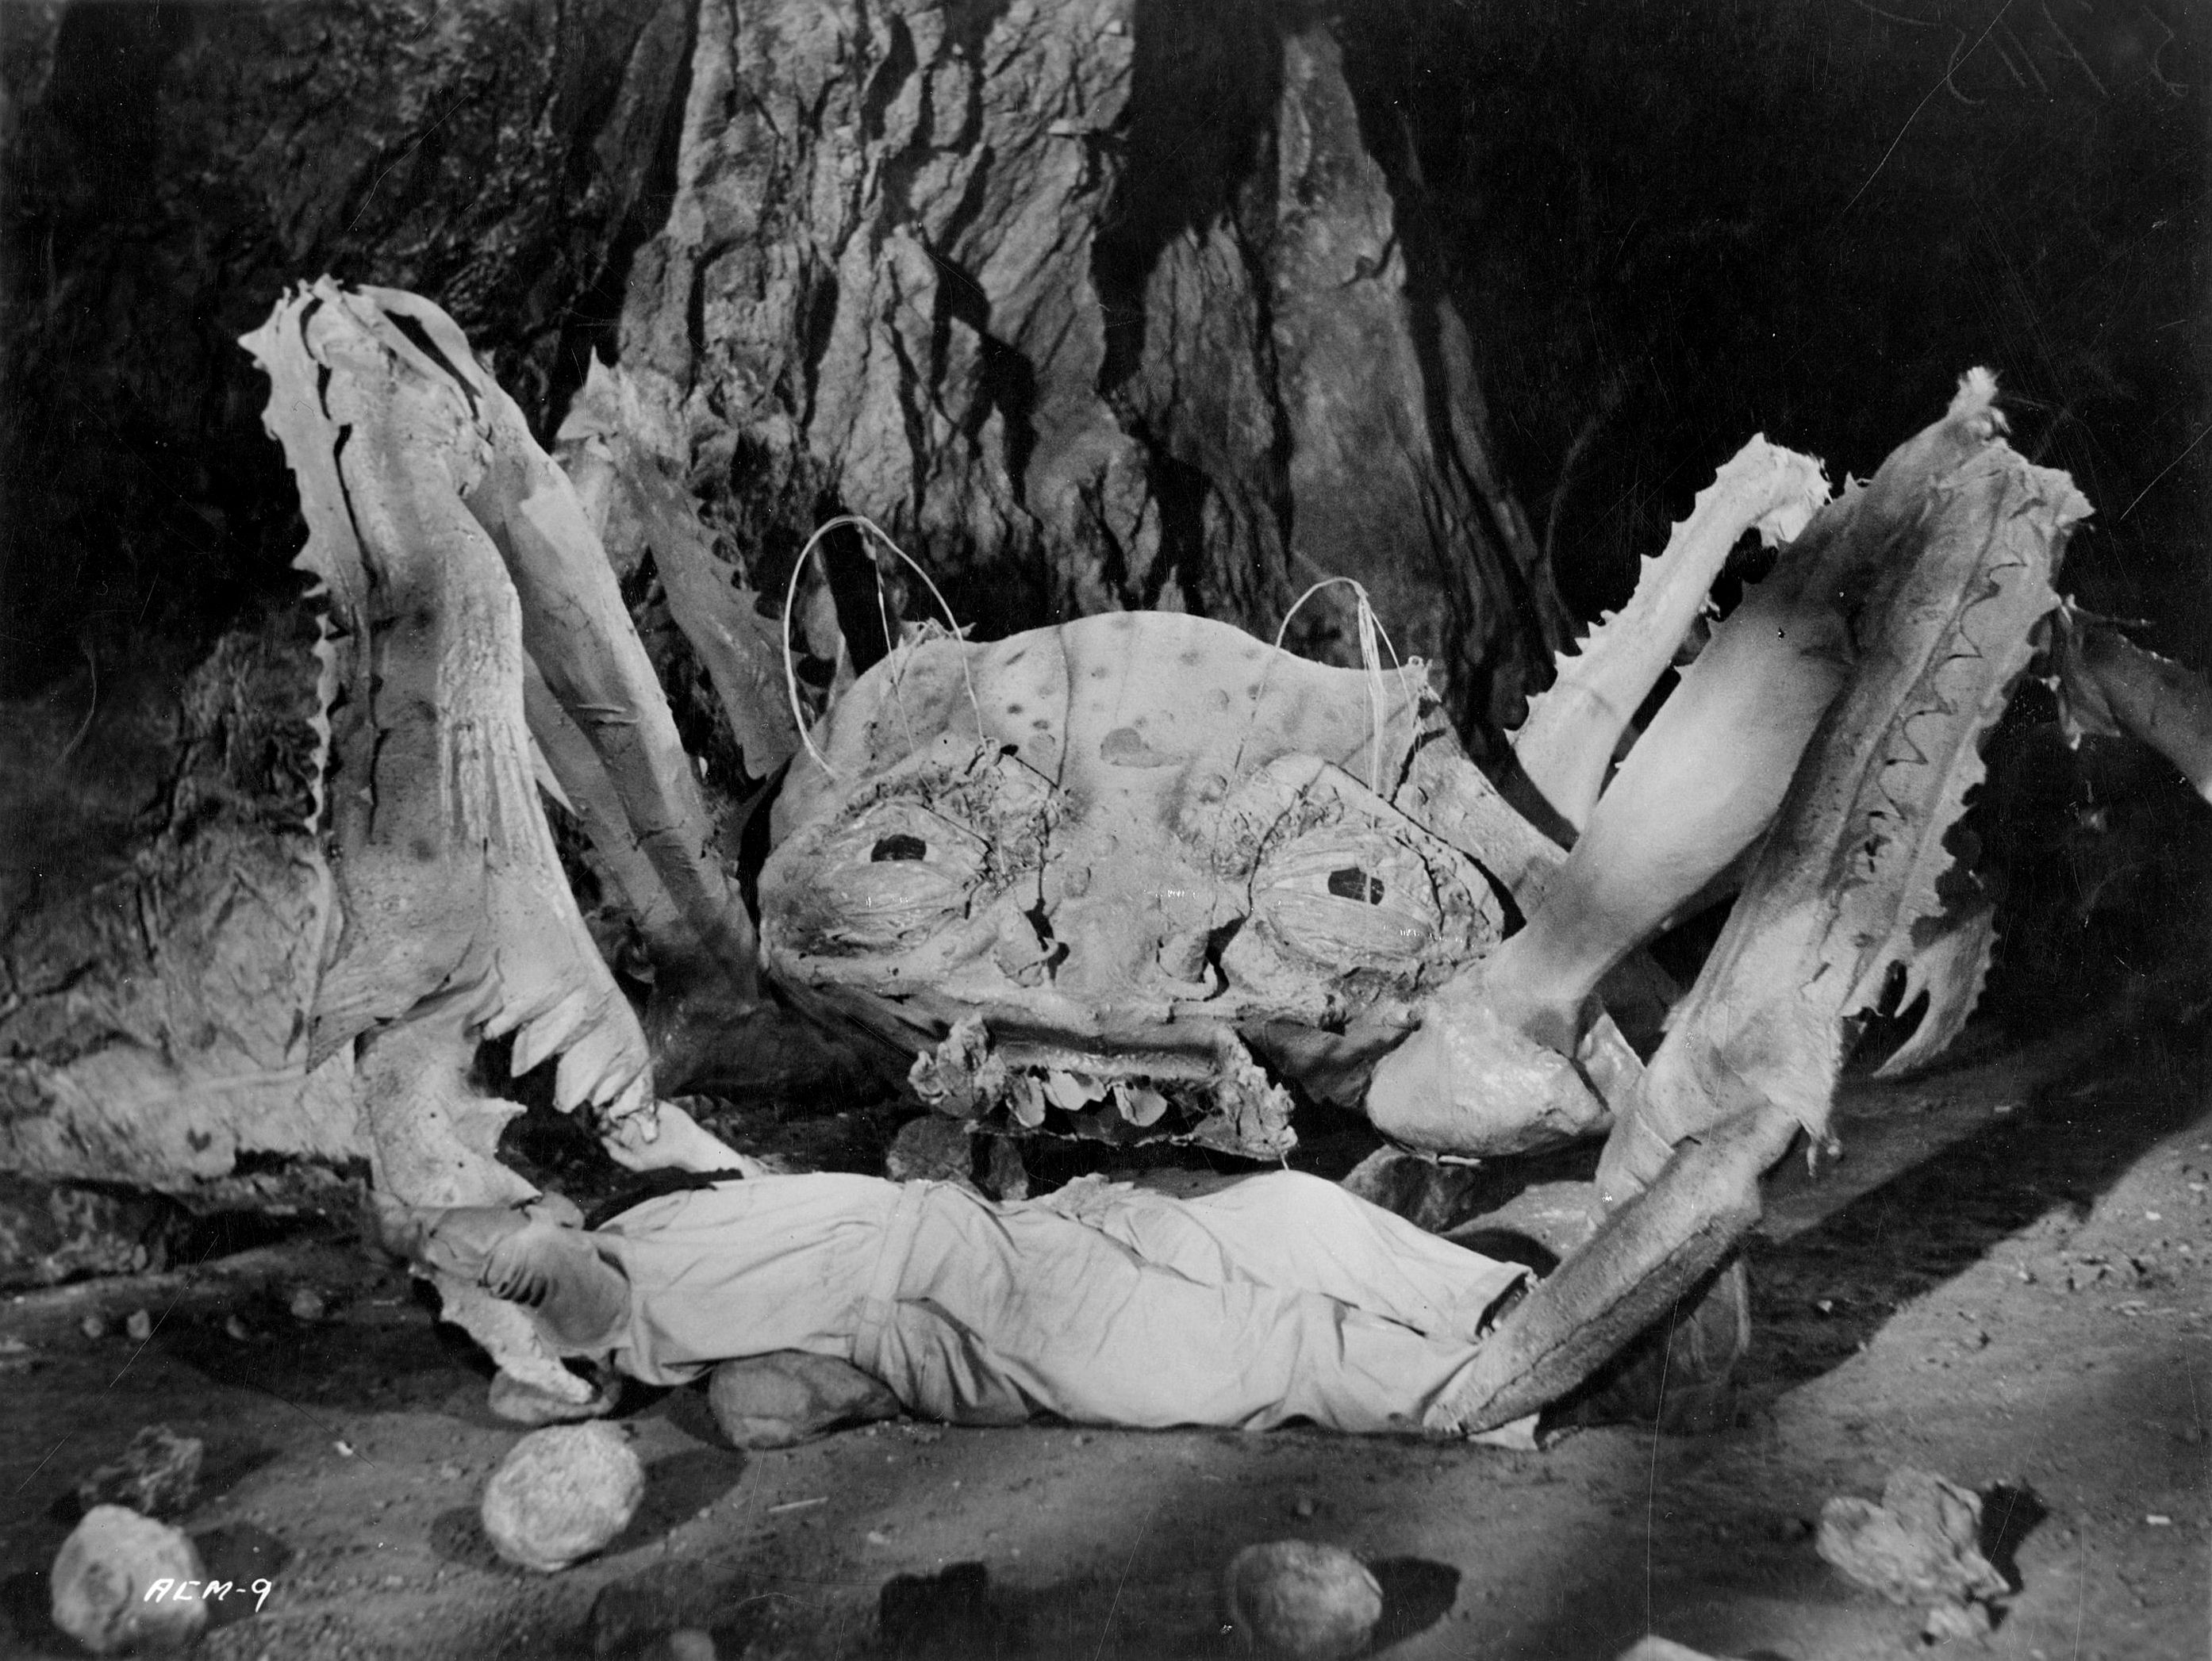 crab_monster_1957_01.jpg